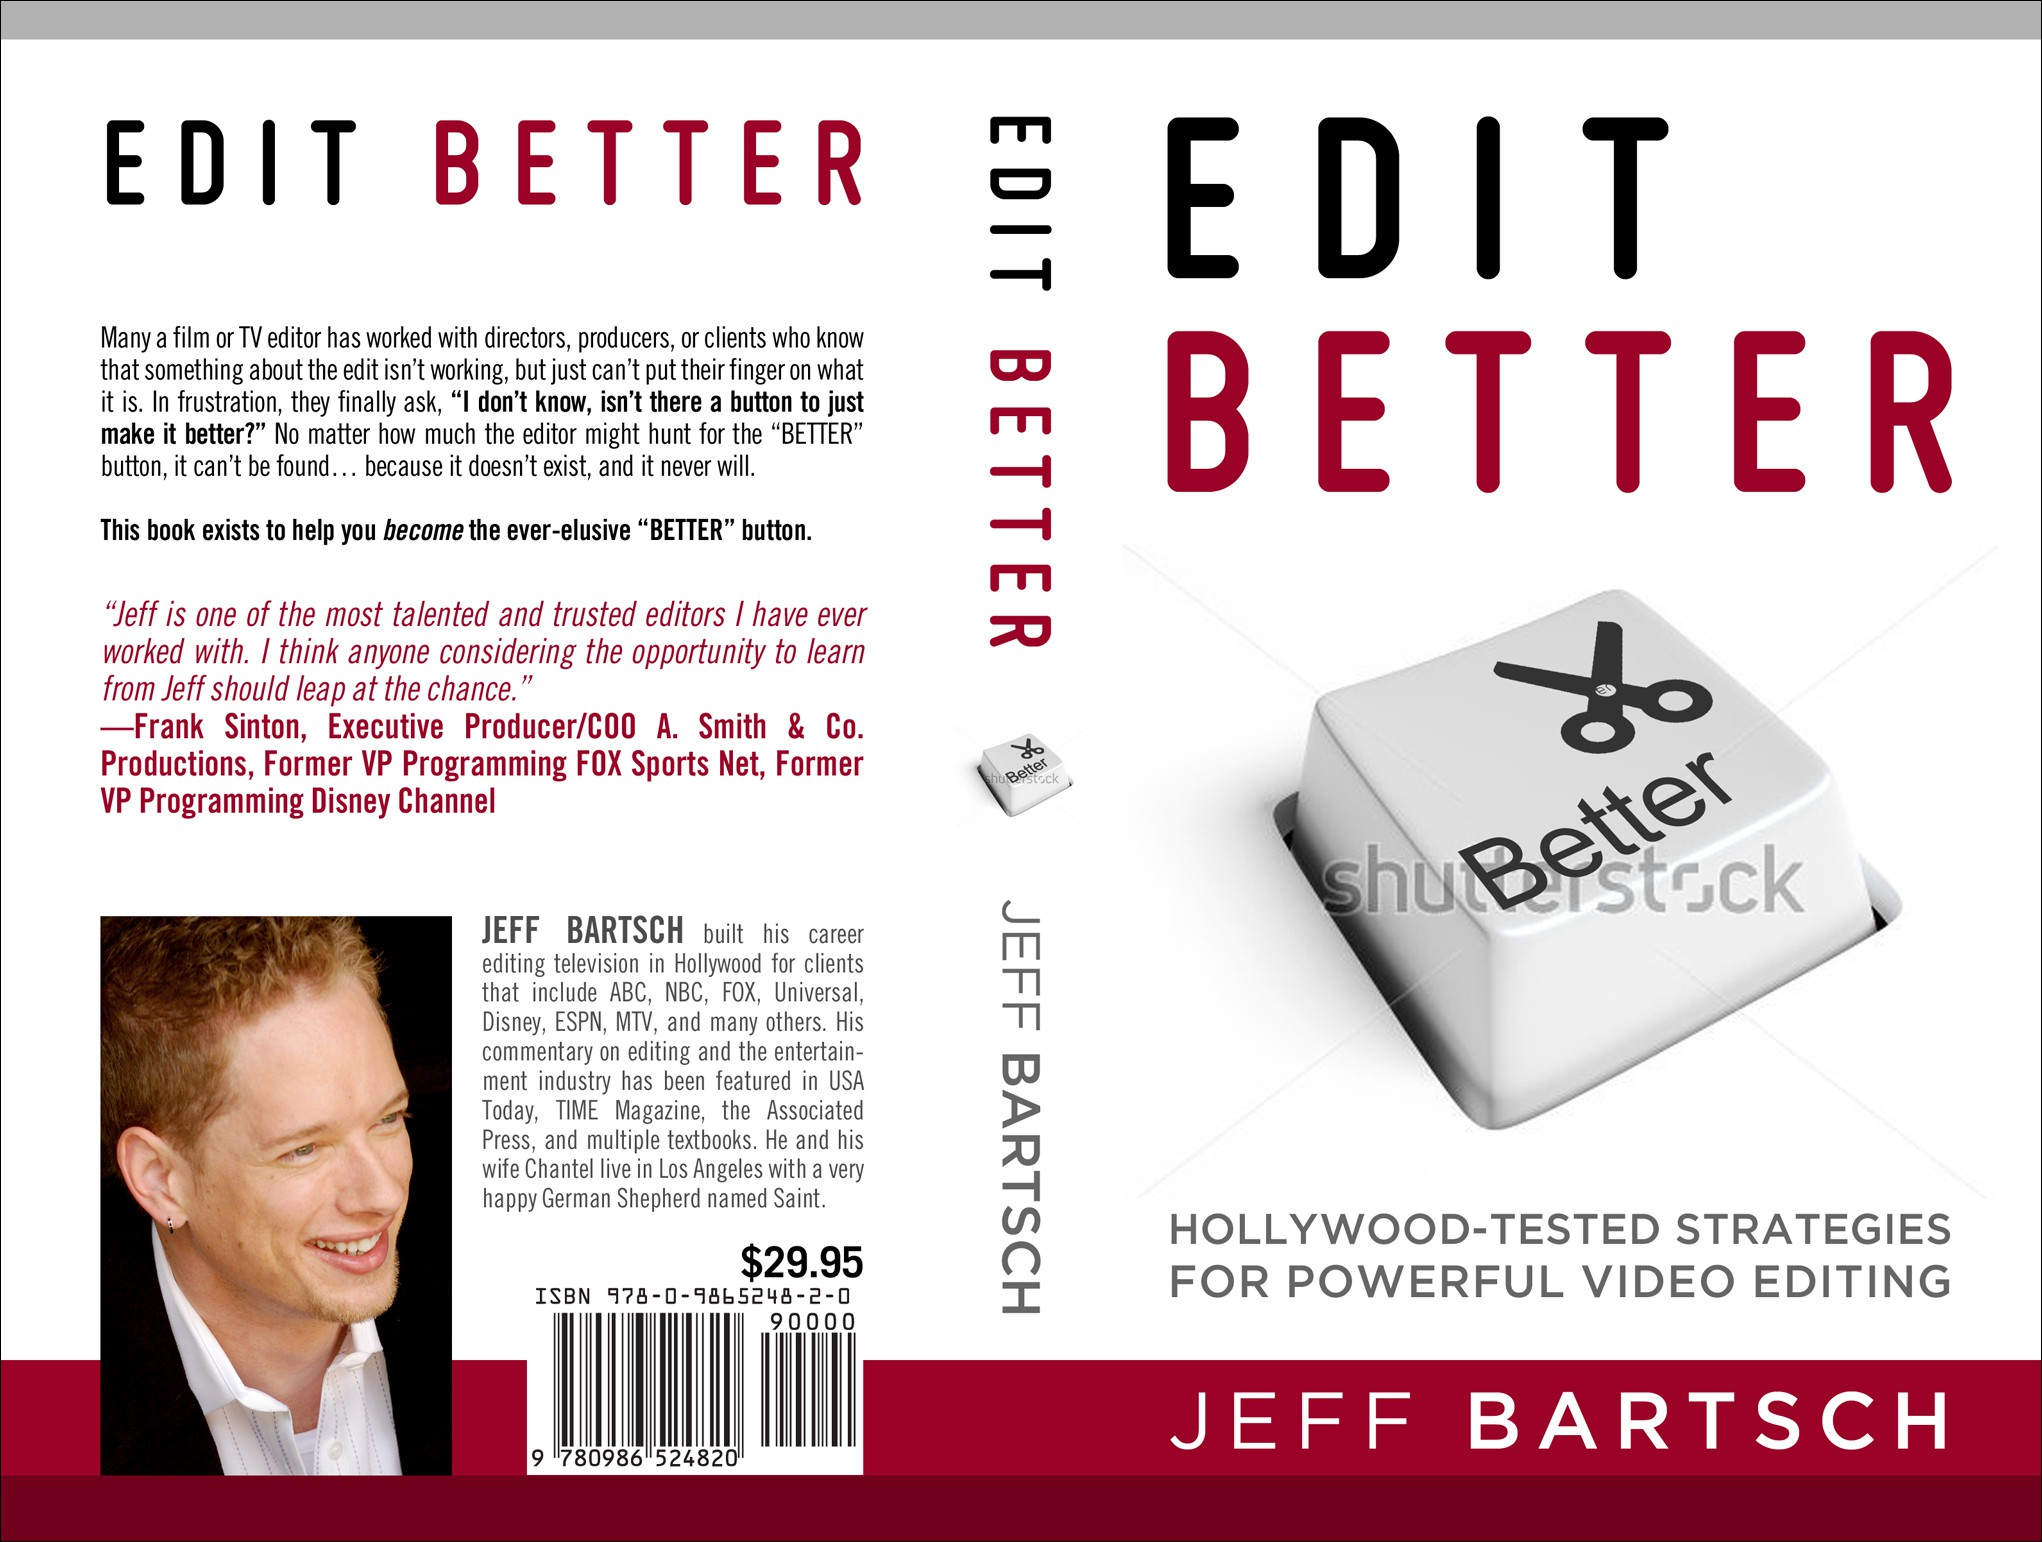 LA TV editor looking for bold, hip book cover.